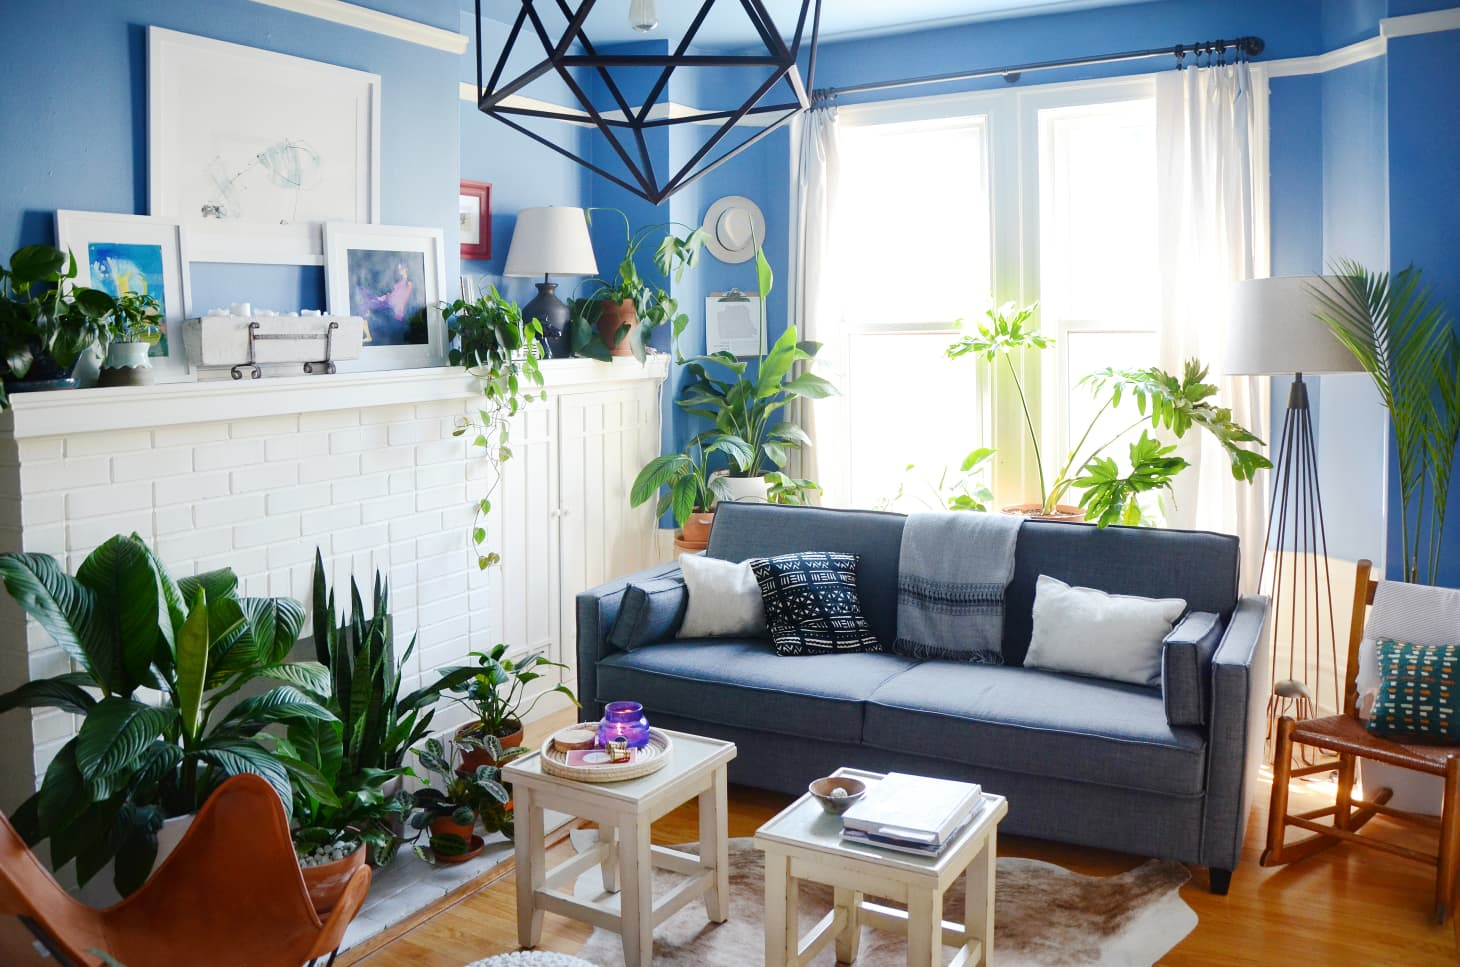 Apartment Therapy - The Best $50 You Can Spend On Your Living Room This Month, According to Design Experts